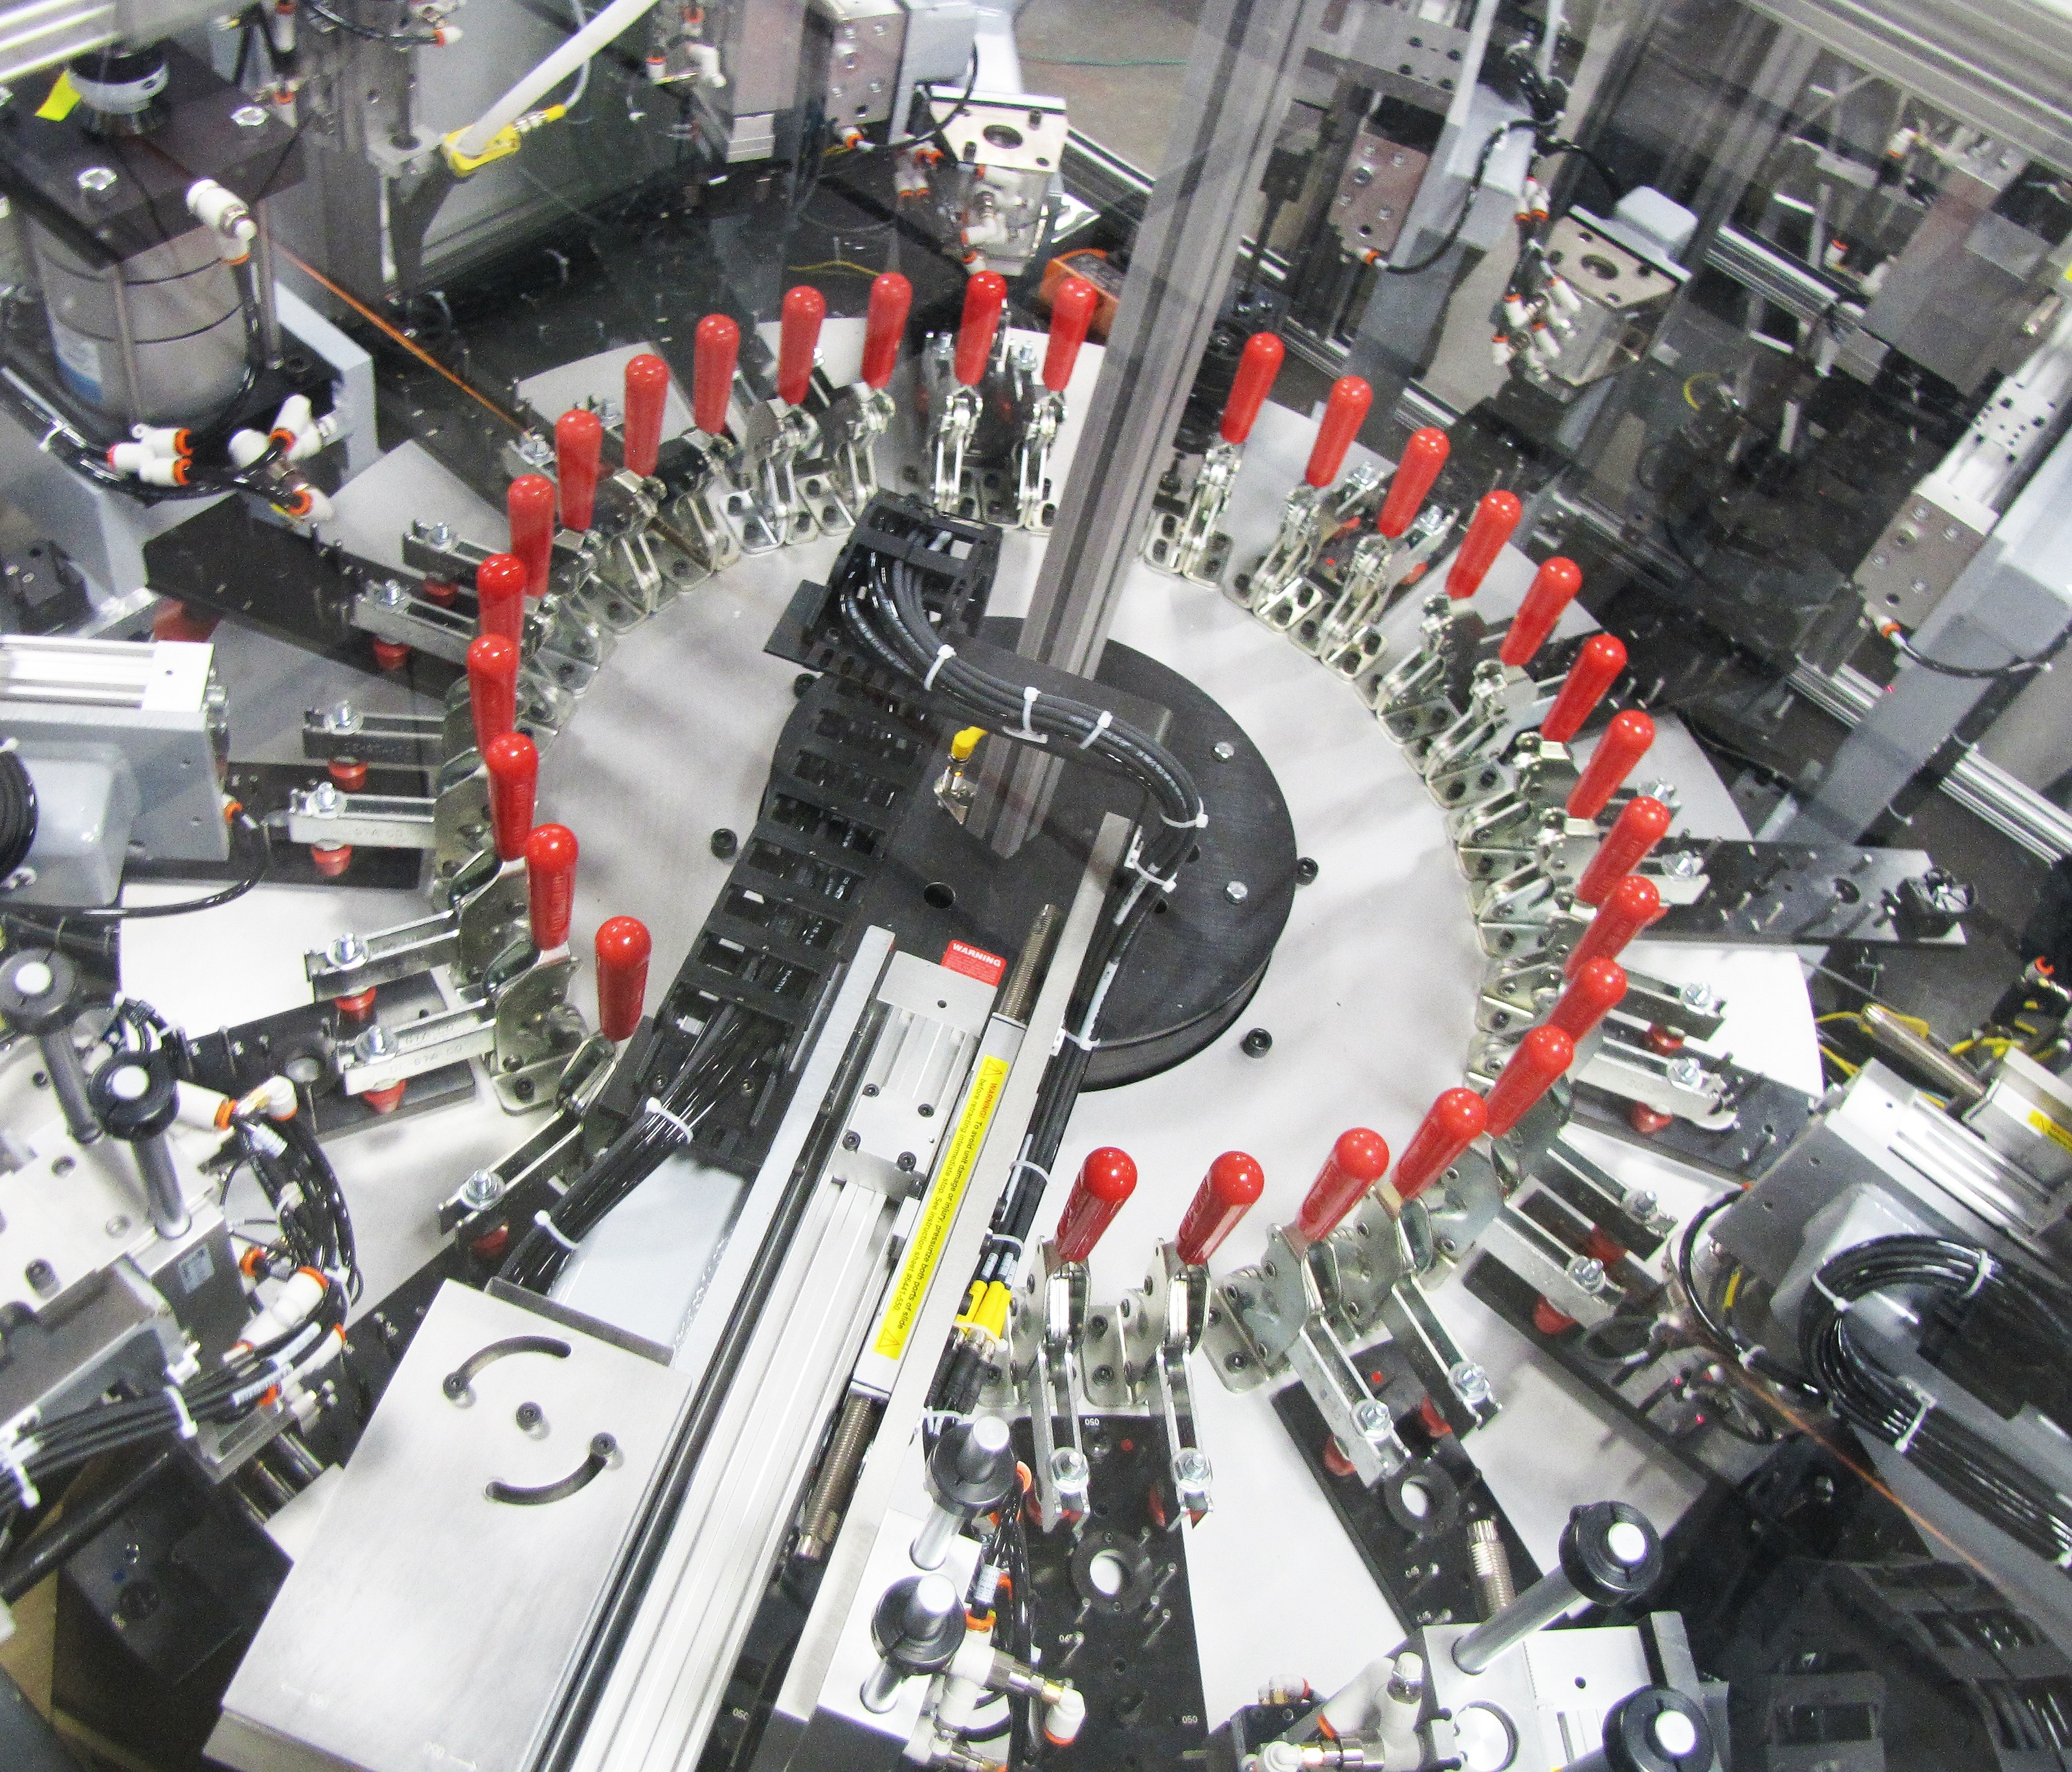 16-station dial assembly machine with vision inspection.